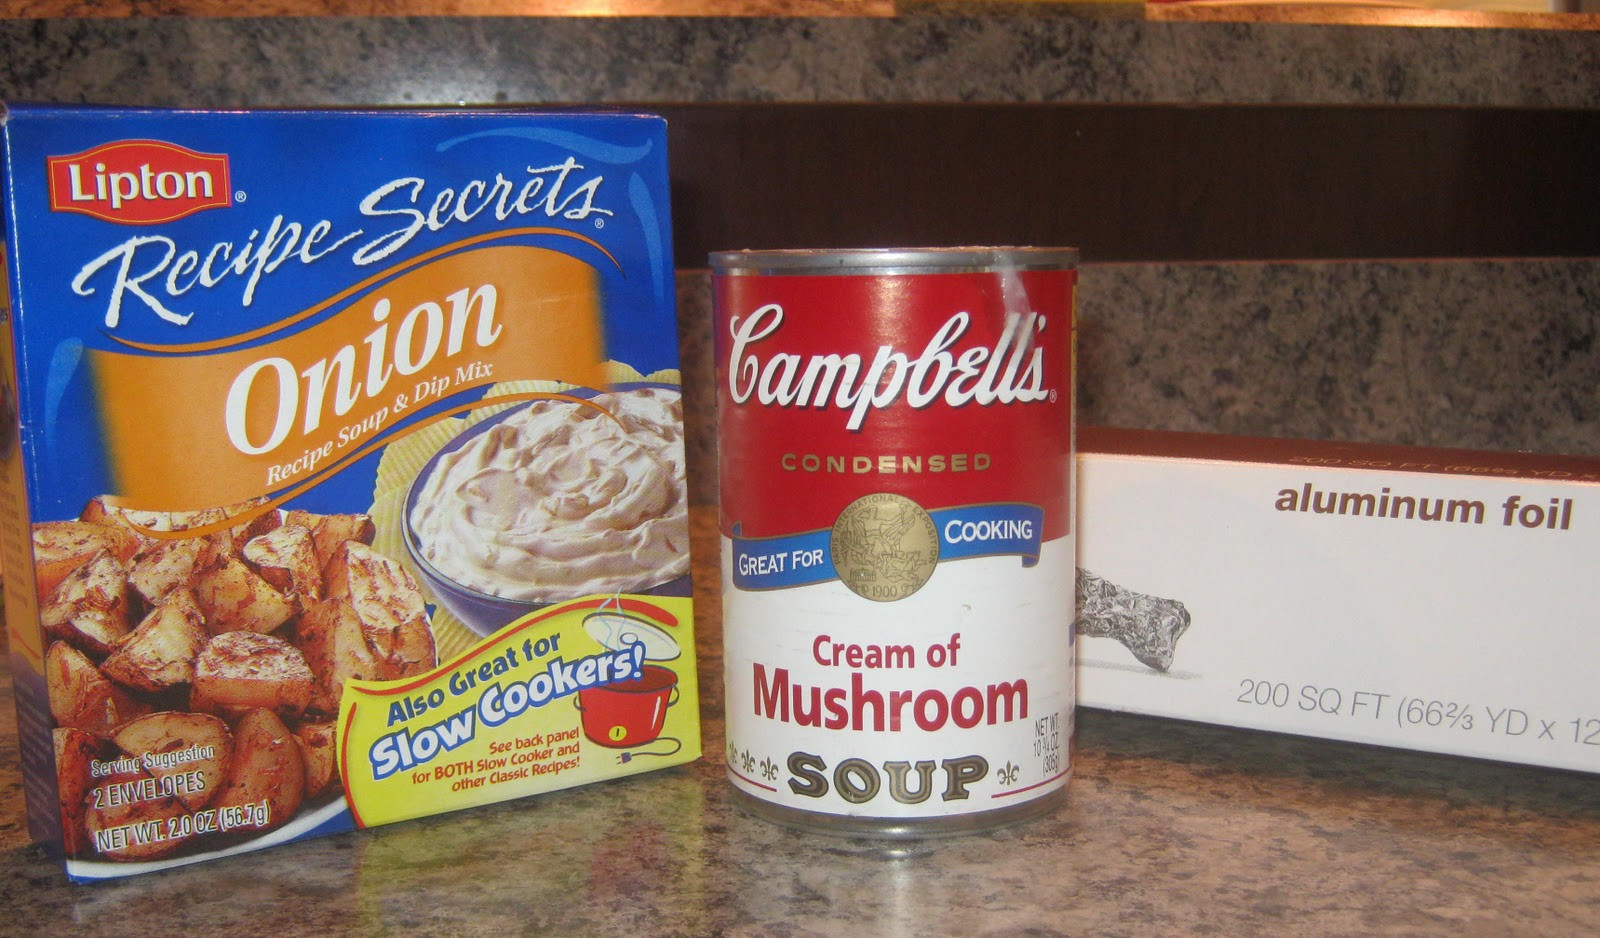 Beef Roast With Lipton Onion Soup Mix And Cream Of Mushroom Soup  beef roast with lipton onion soup mix and cream of